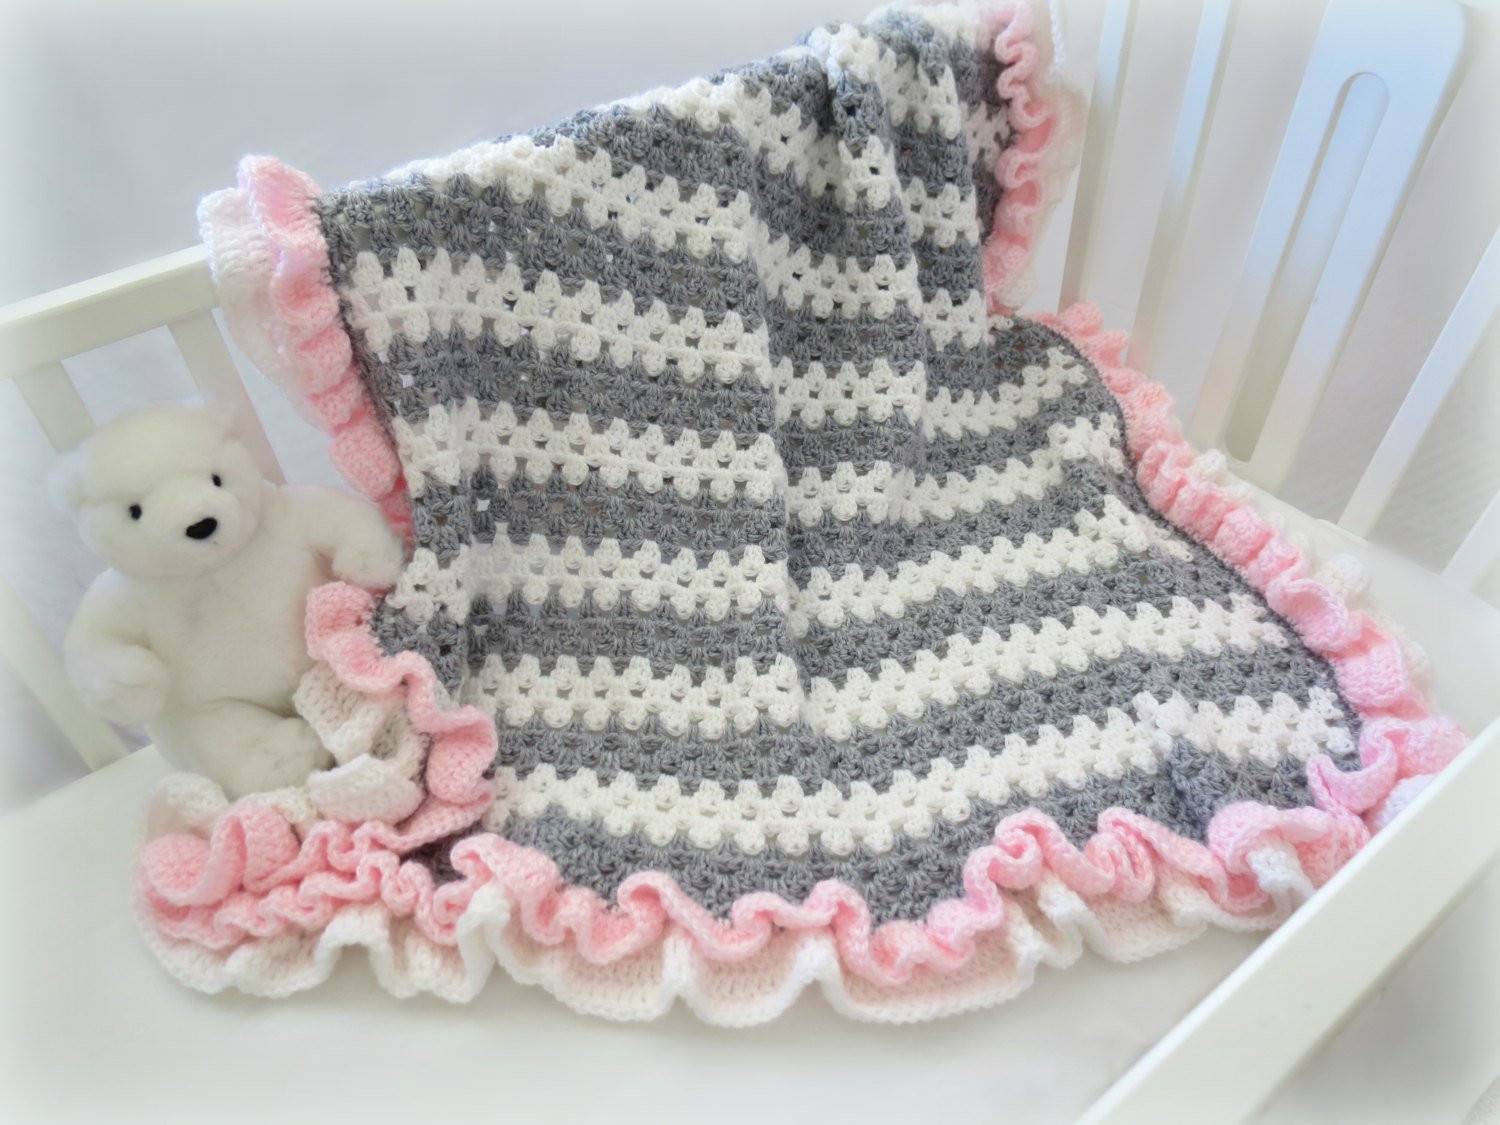 Baby Boy Crochet Blanket Patterns New Crochet Baby Blanket Pattern Baby Crochet Blanket Afghan Of Baby Boy Crochet Blanket Patterns Best Of 17 Best Images About Cute Cuddly Blankets On Pinterest